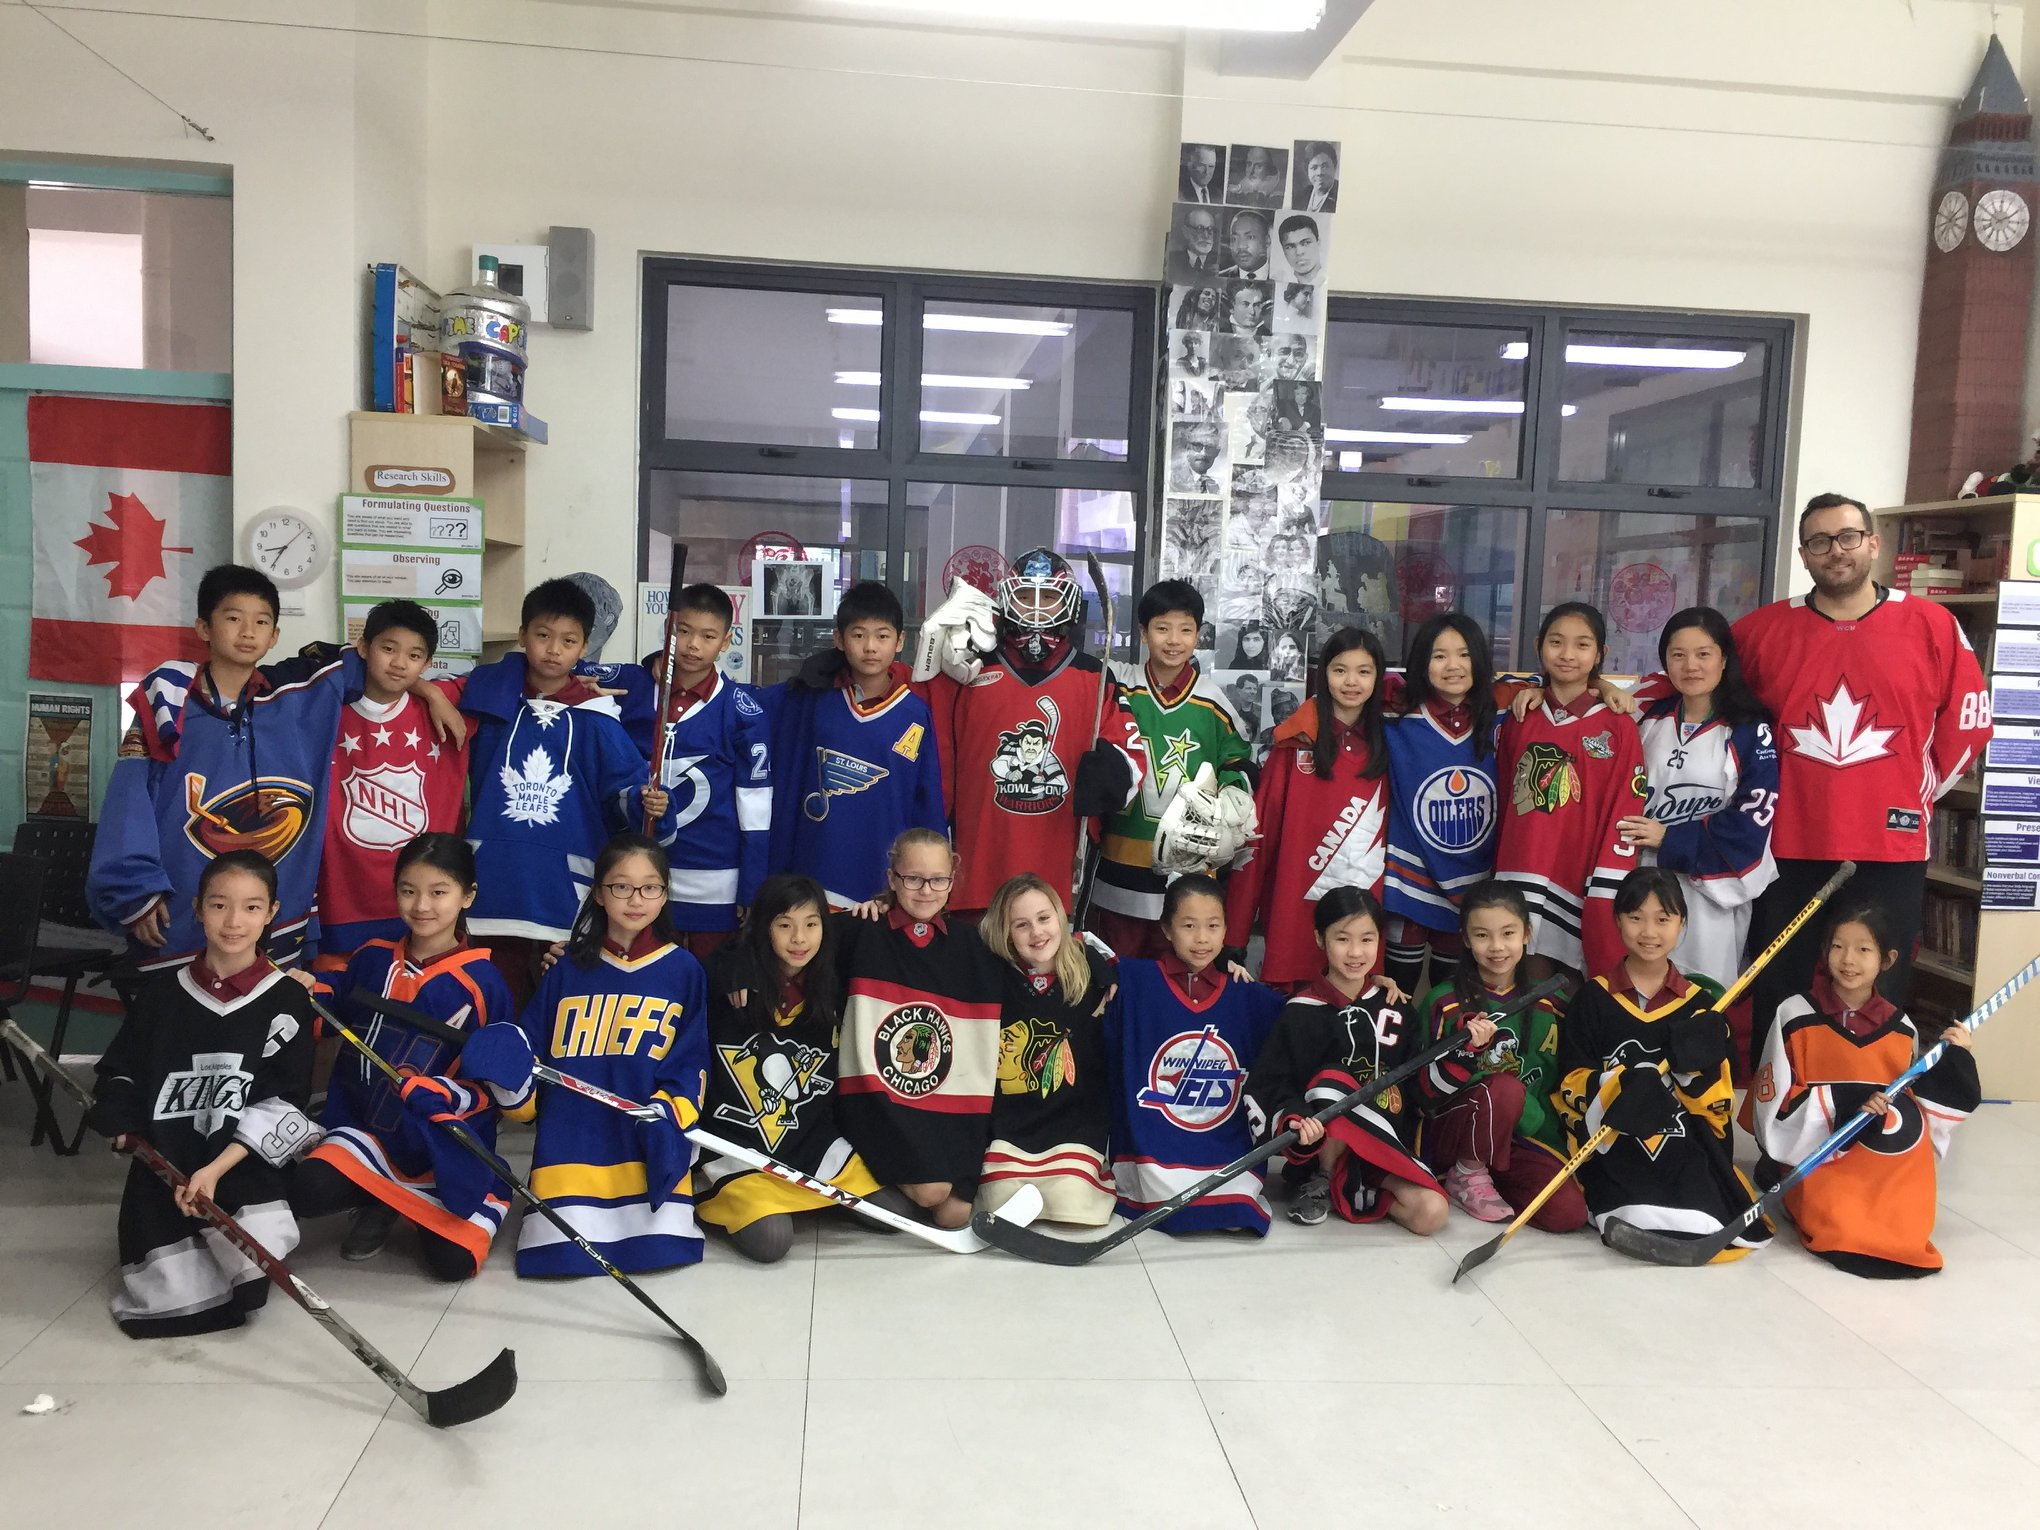 Hockey moms urge Canadians to join Jersey Day   We are all one team  a55e79babc8